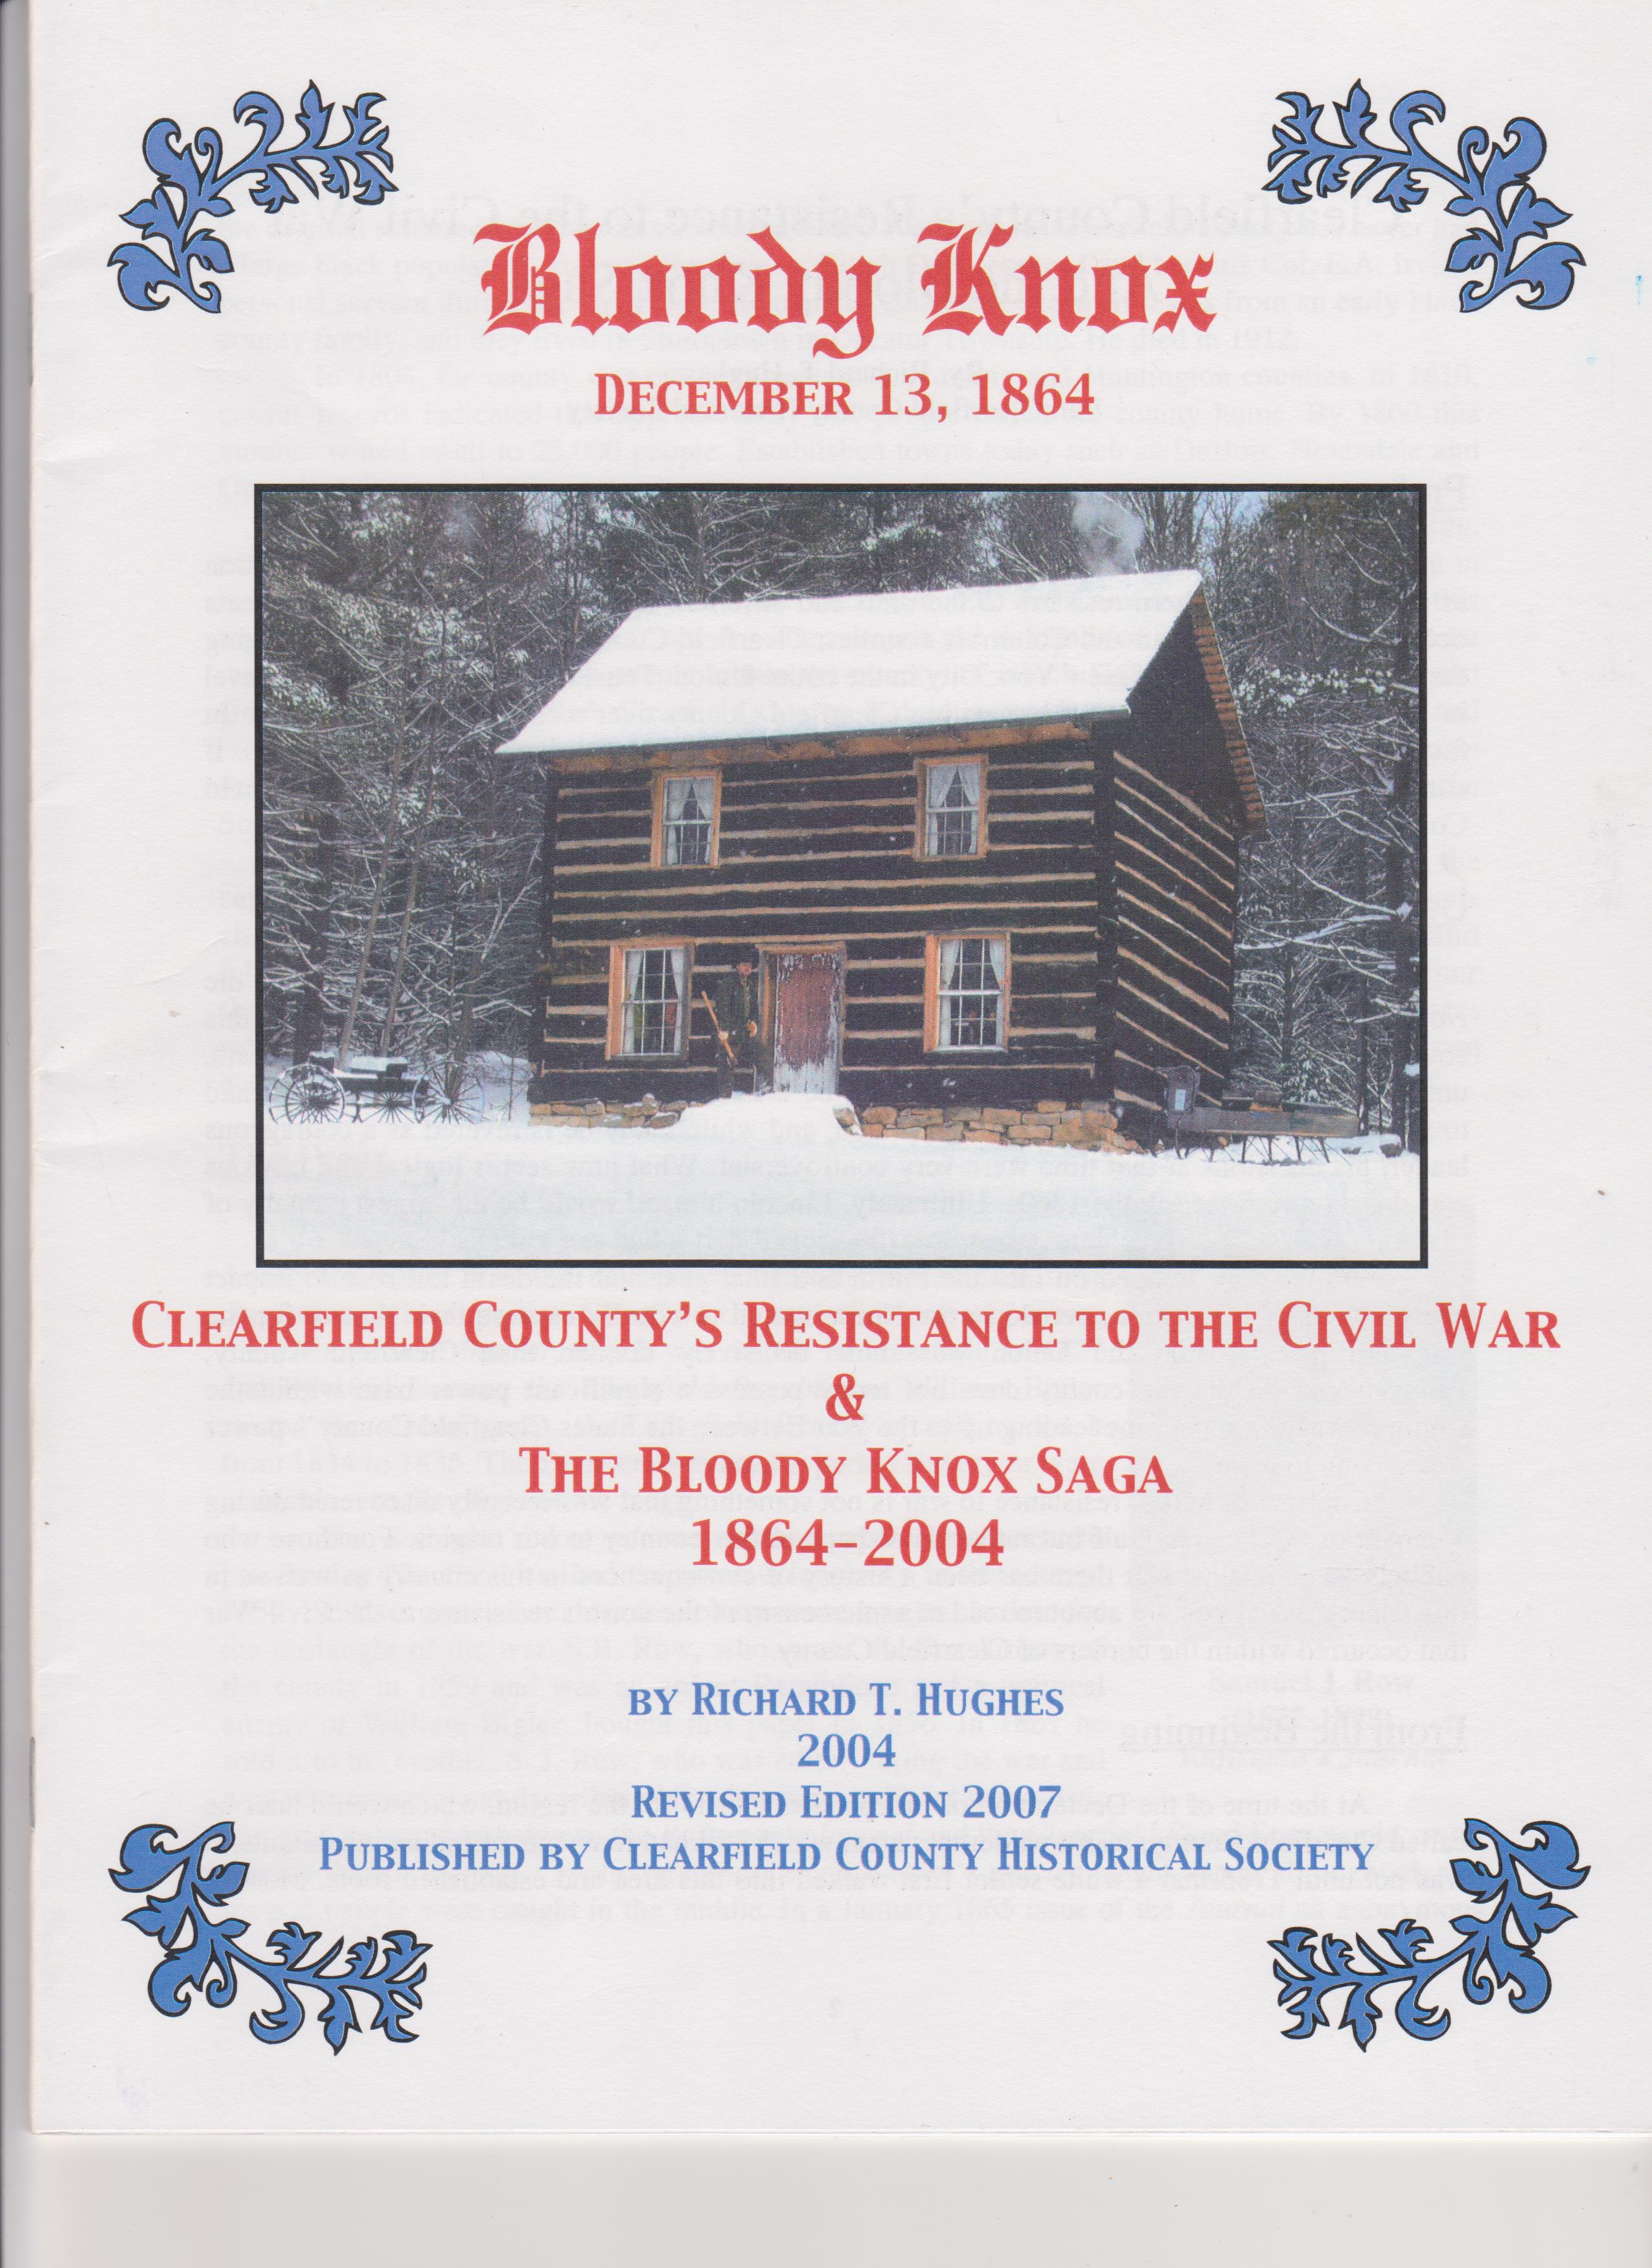 Clearfield County's Resistance to the Civil War & The Bloody Knox Saga 1864-2004